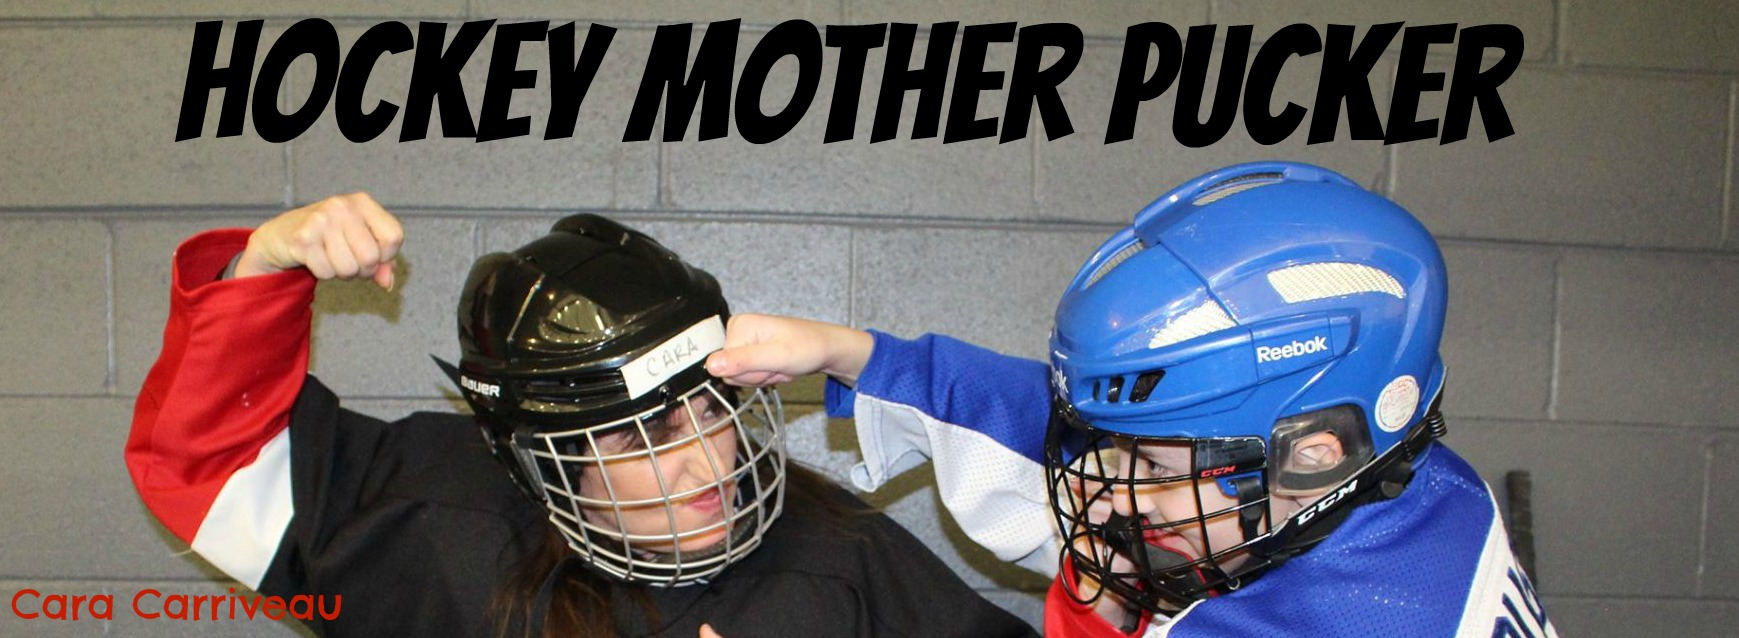 Hockey Mother Pucker